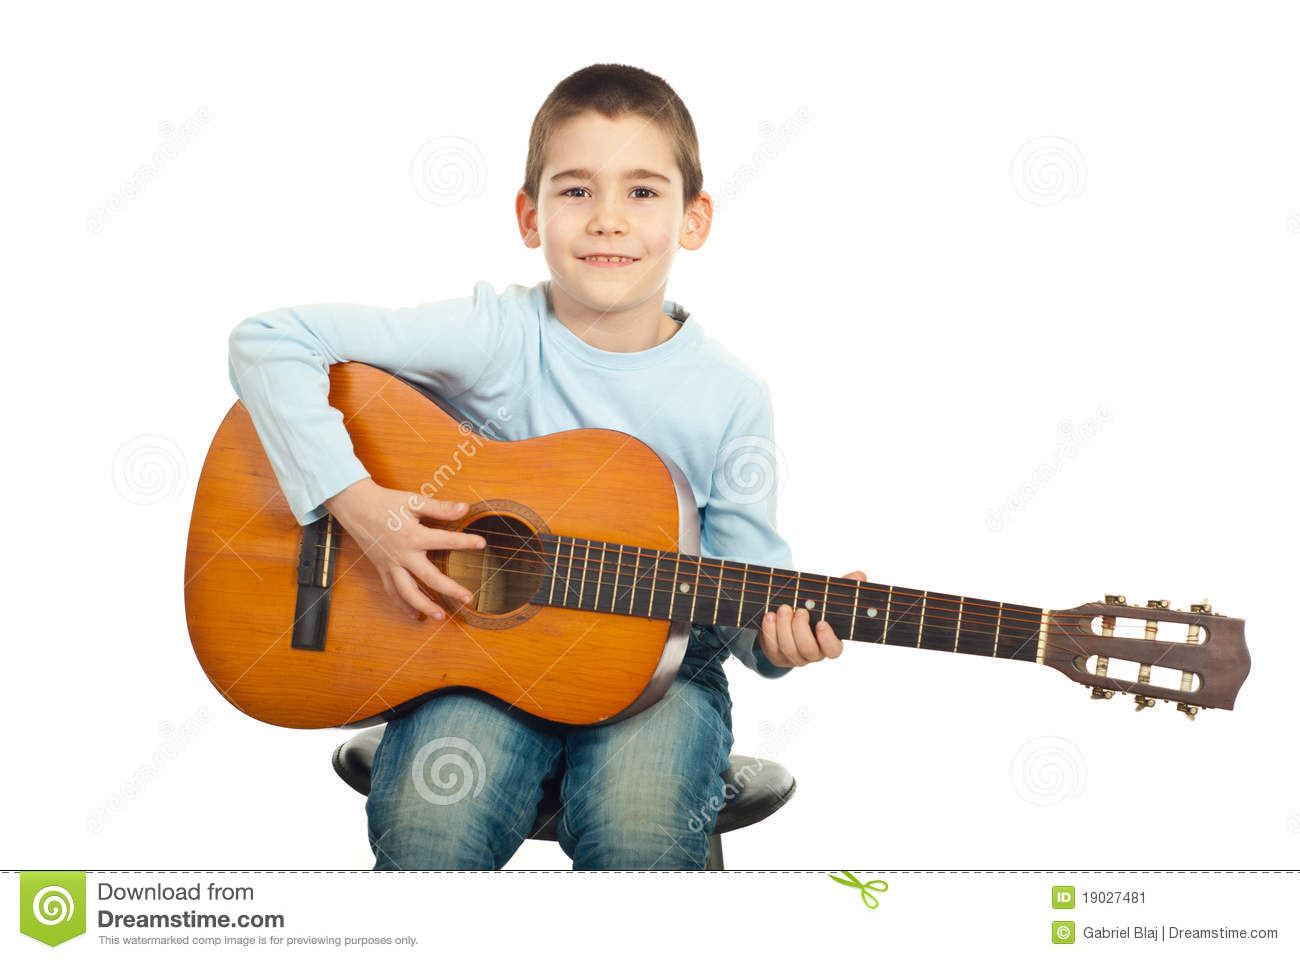 small boy playing guitar stock image image of sitting 19027481. Black Bedroom Furniture Sets. Home Design Ideas